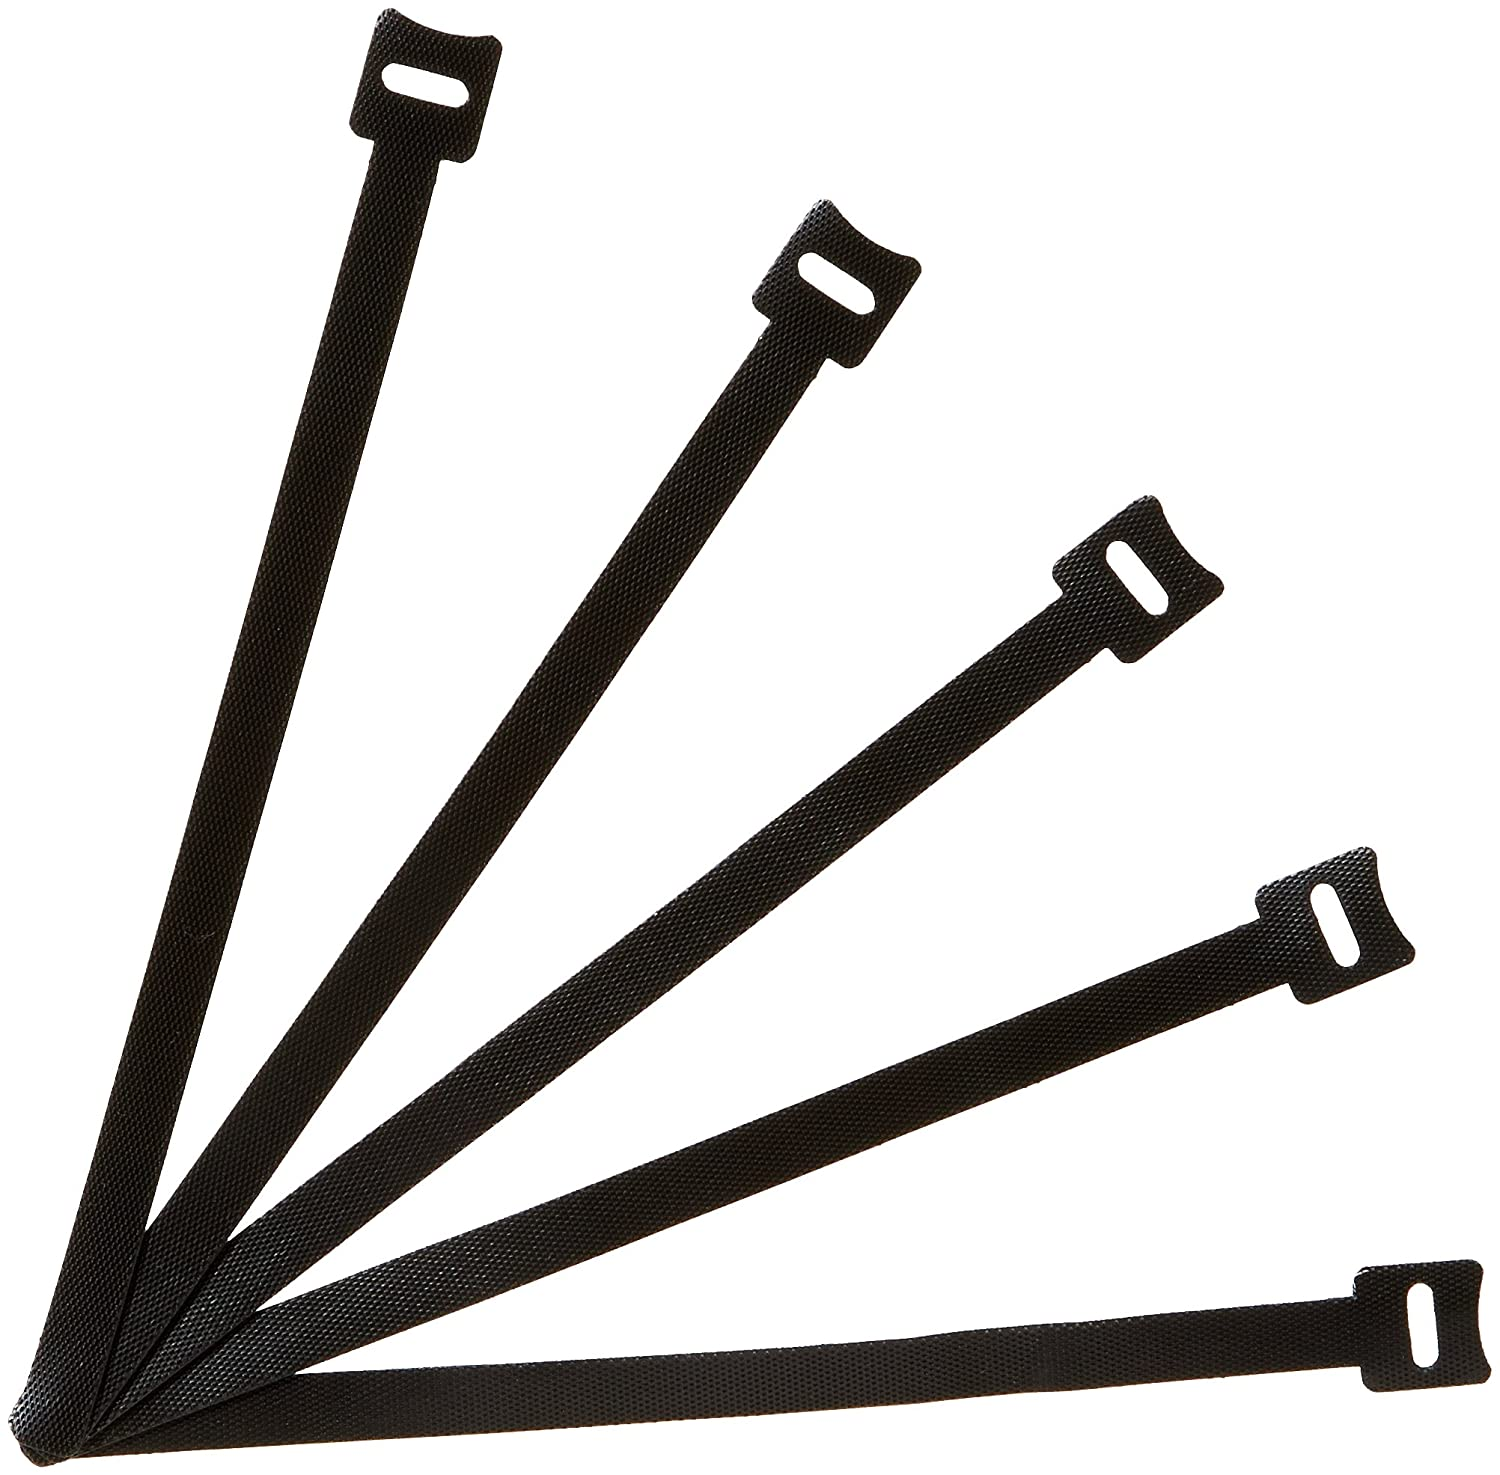 Basics Reusable Cable Ties - 8-Inch, 50-Pack AmazoBasics AMZ-RCT-8IN-50P